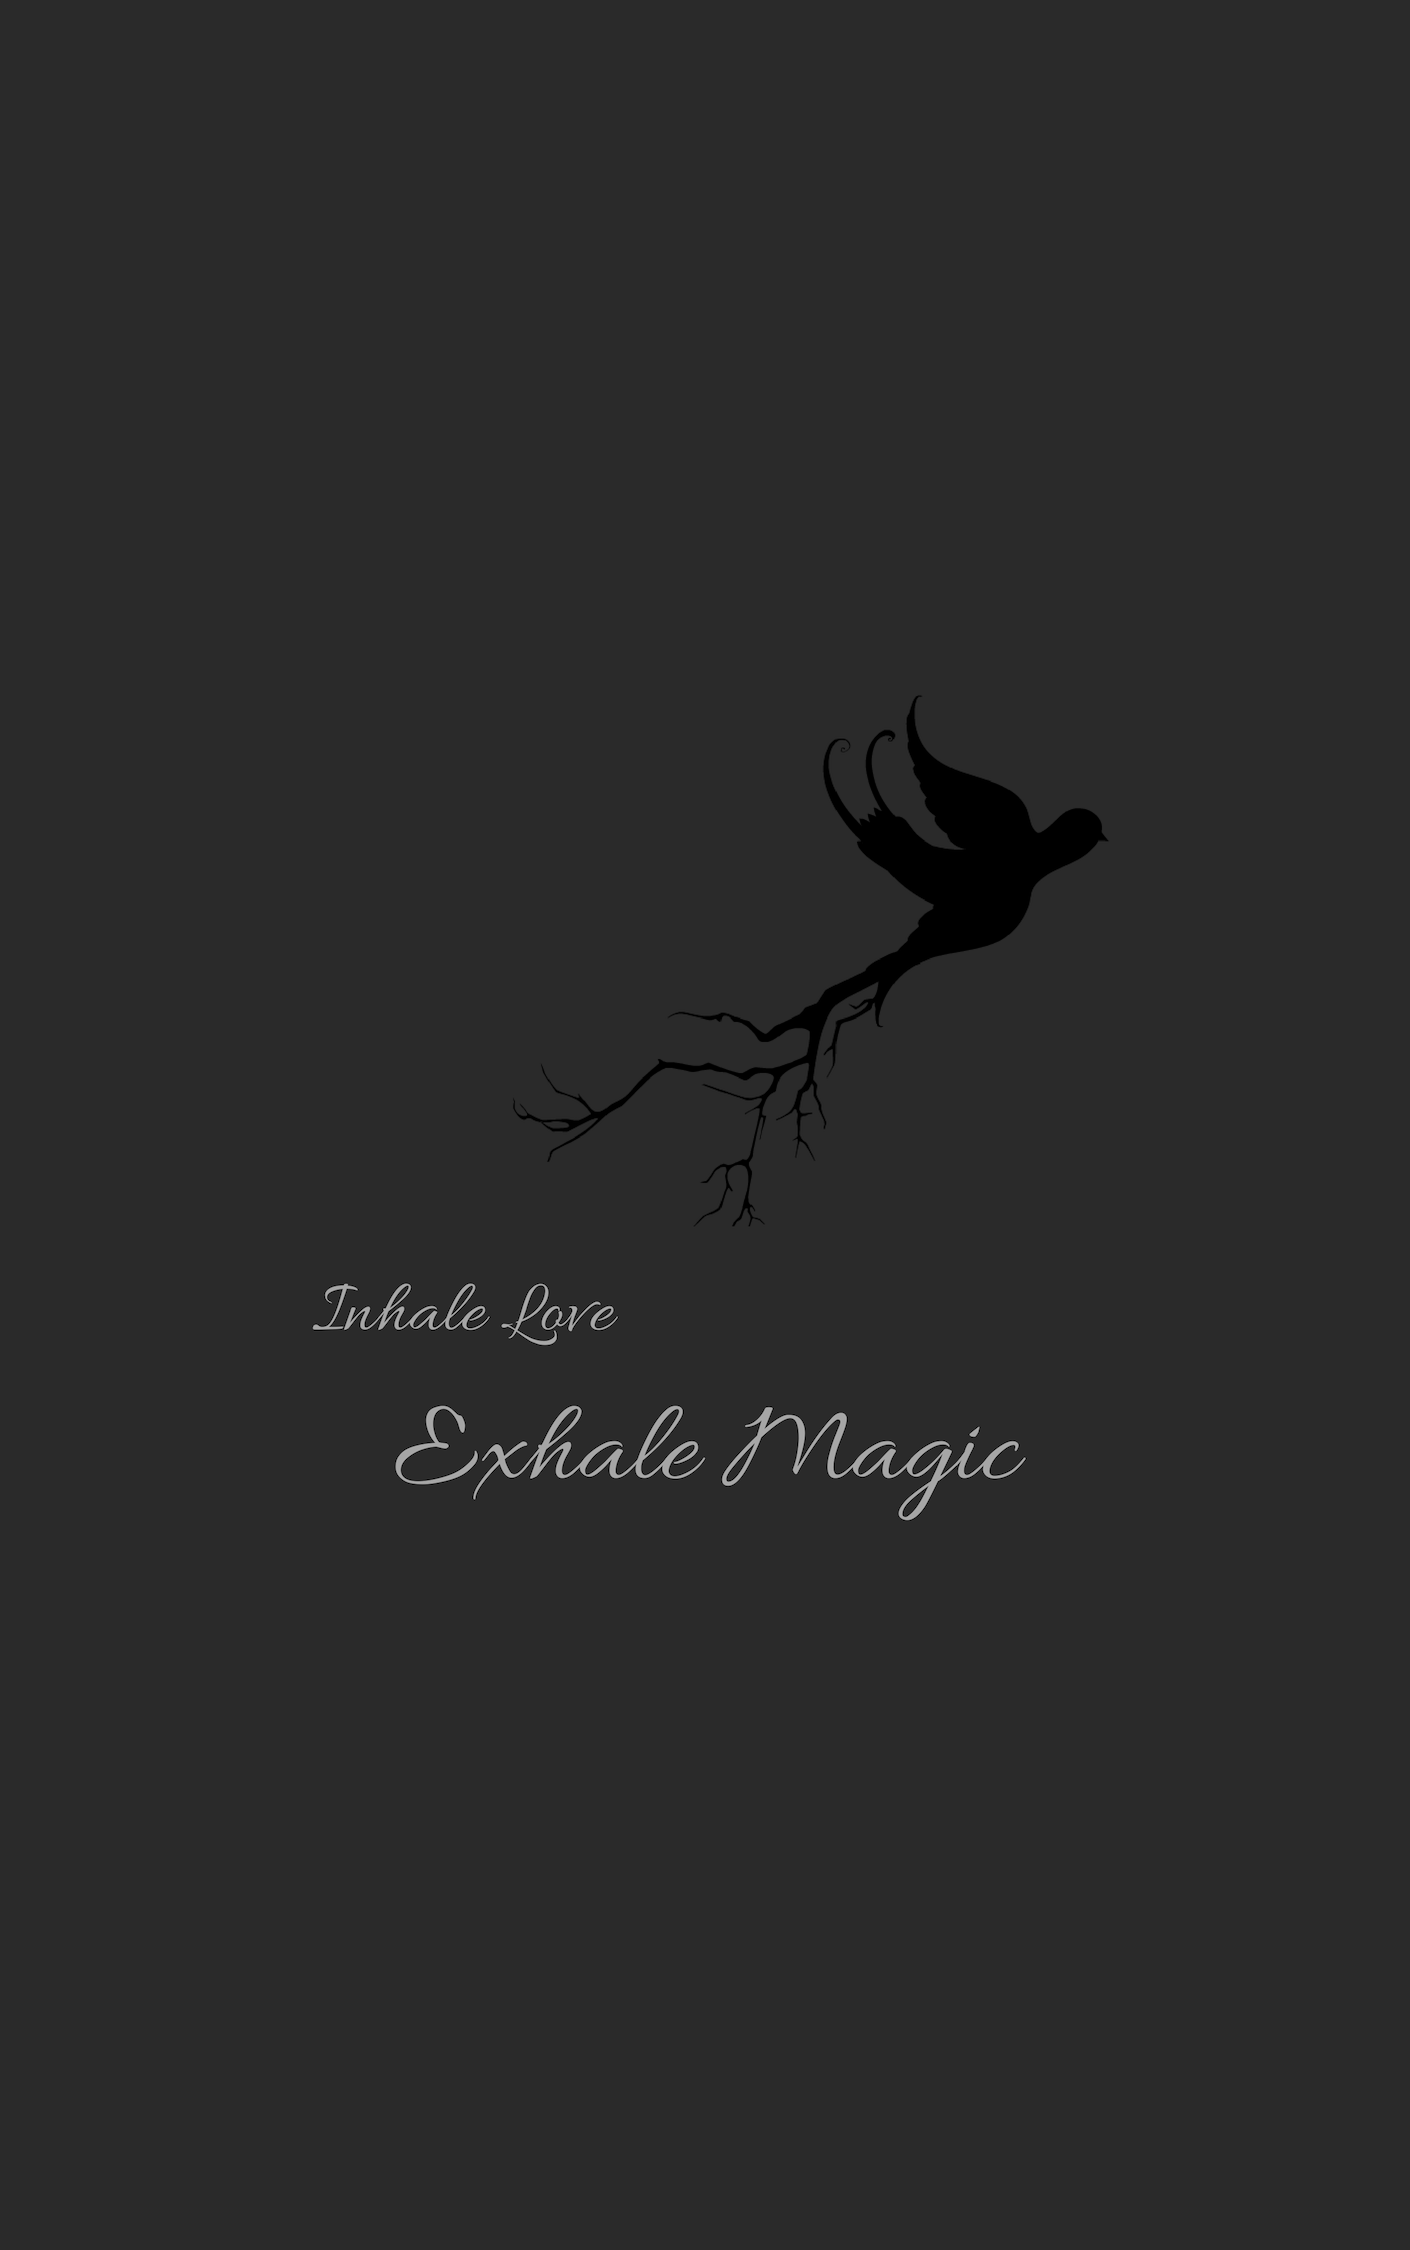 Inhale Love Exhale Magic, By Hillary Wen